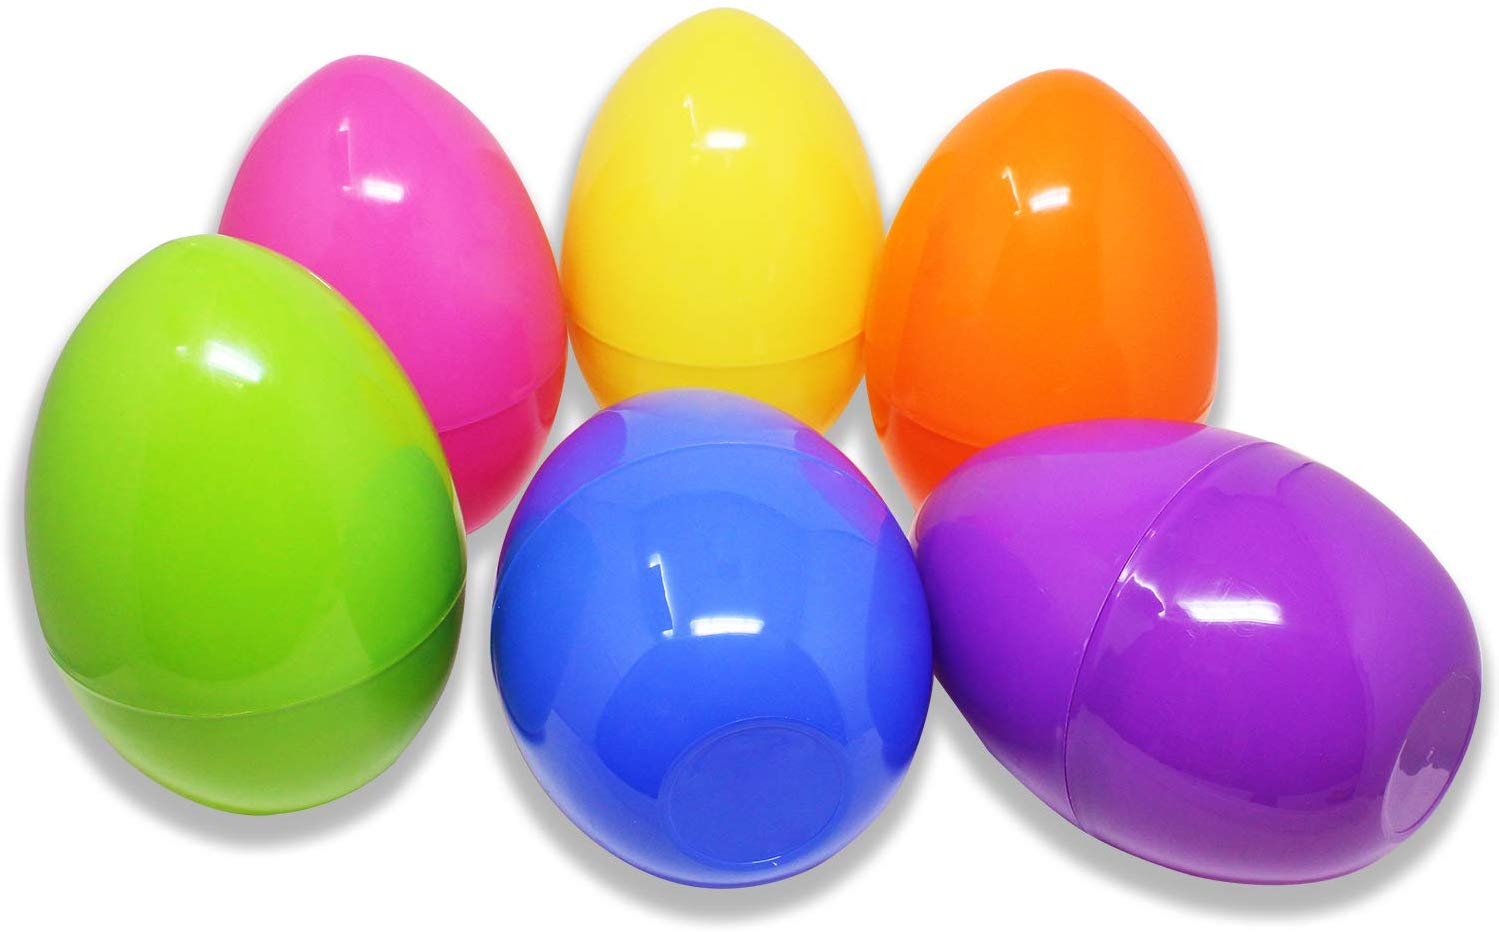 JOYIN 6 Pcs Colorful 10 inches Easter Eggs